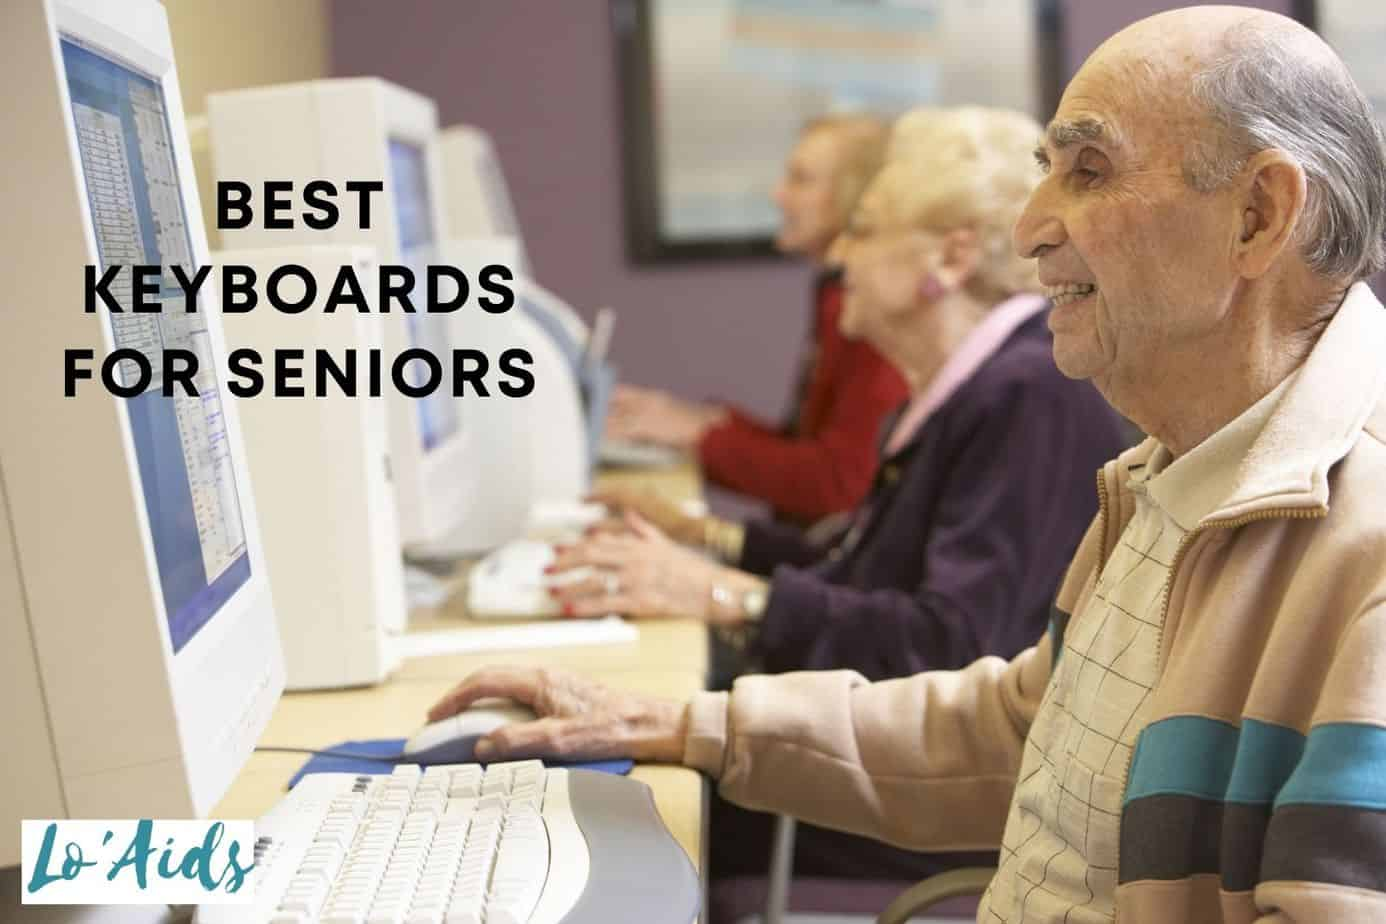 group of older people using a computer with the best keyboards for seniors